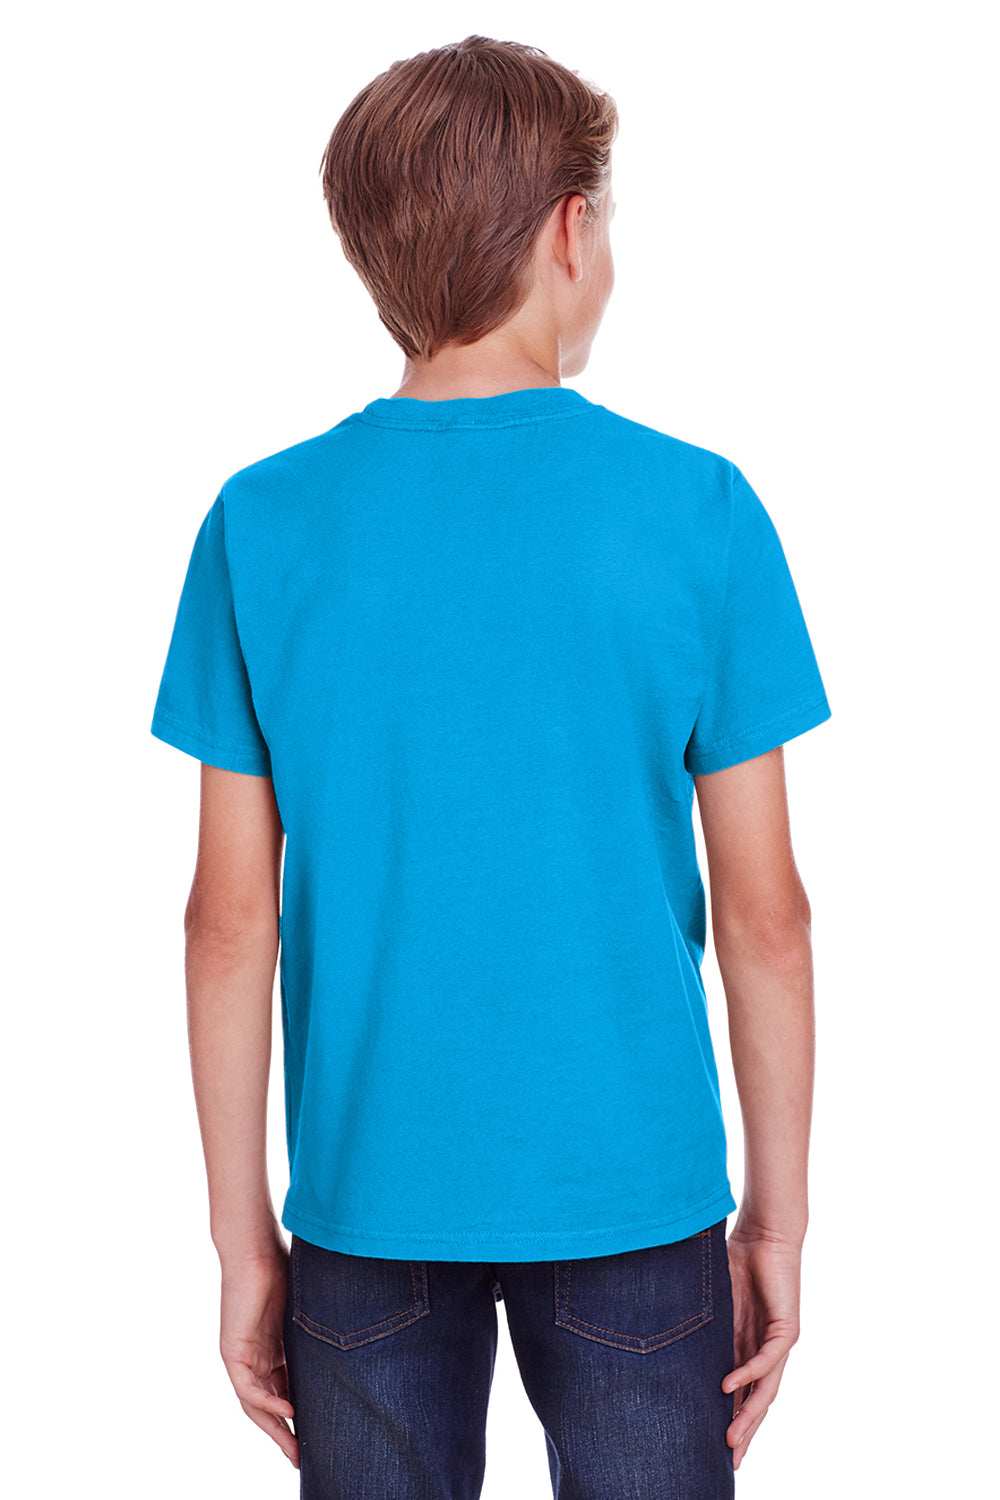 ComfortWash by Hanes GDH175 Youth Short Sleeve Crewneck T-Shirt Sky Blue Back